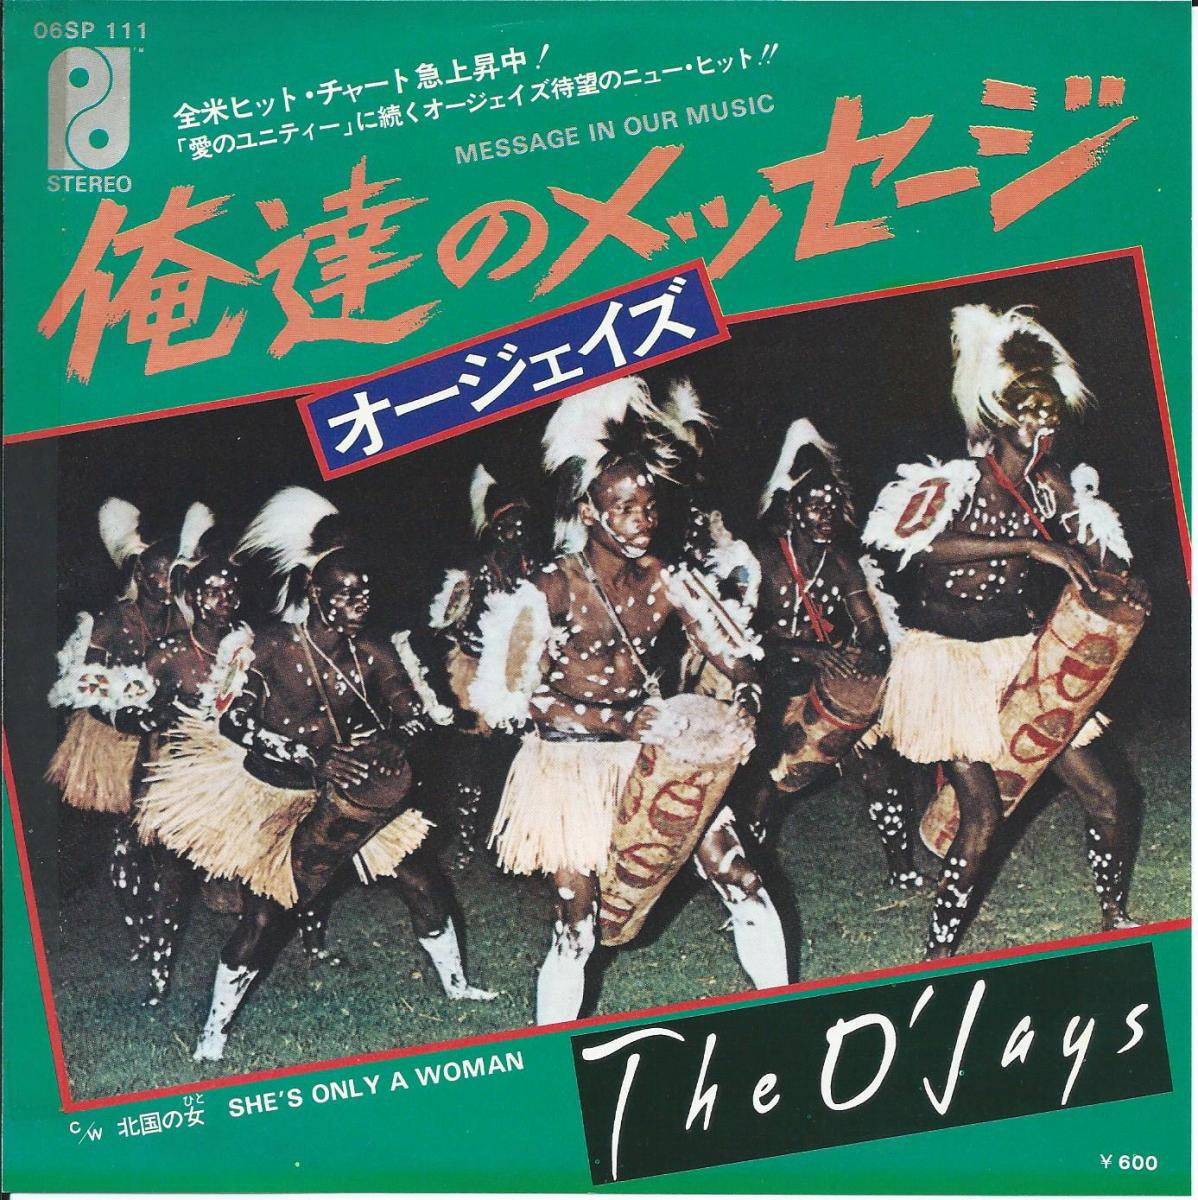 オージェイズ THE O'JAYS / 俺たちのメッセージ MESSAGE IN OUR MUSIC / SHE'S ONLY A WOMAN (7